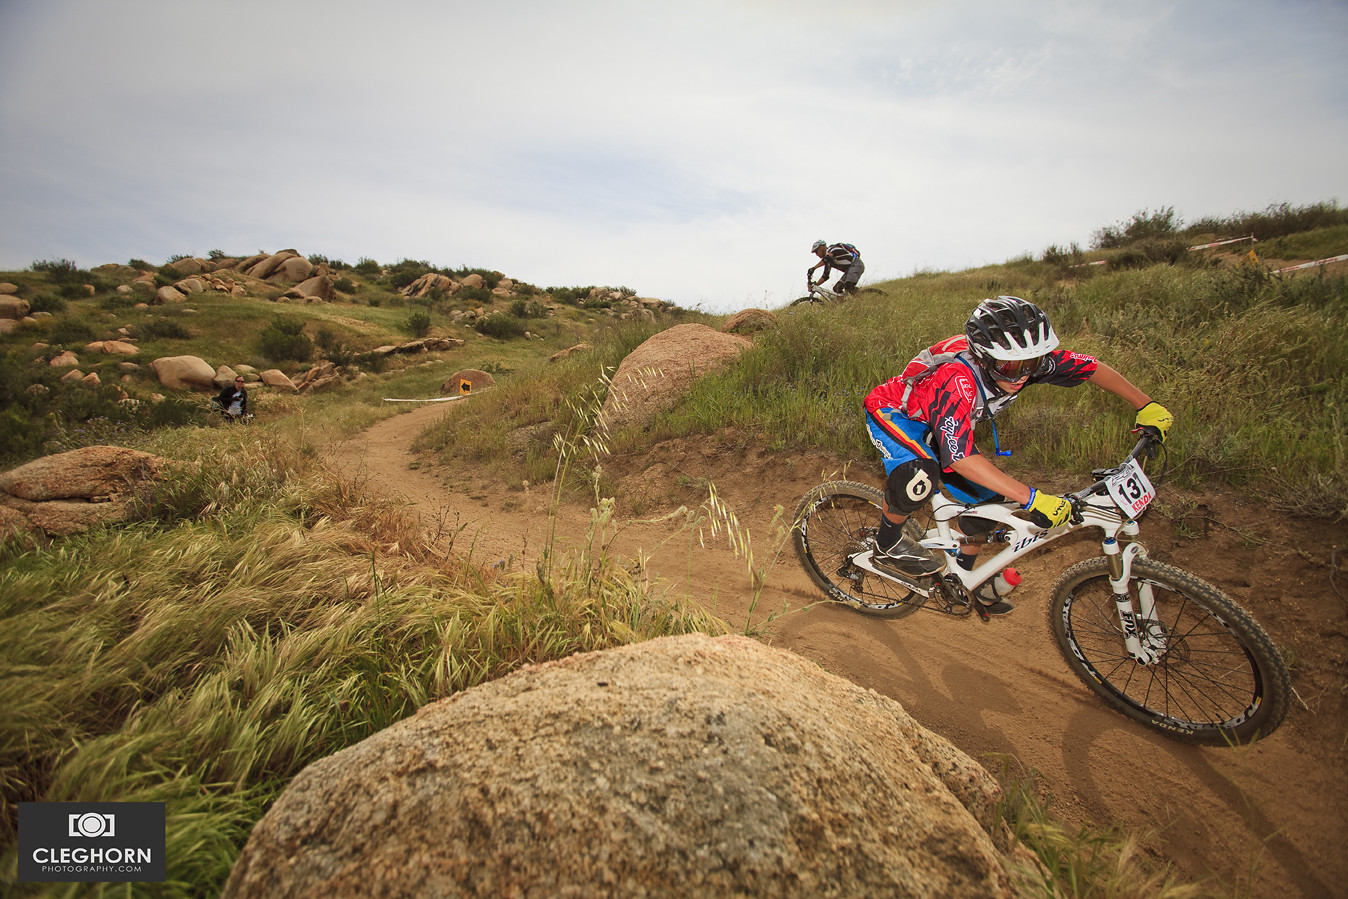 Shredding! - Cleghorn Photography - Mountain Biking Pictures - Vital MTB